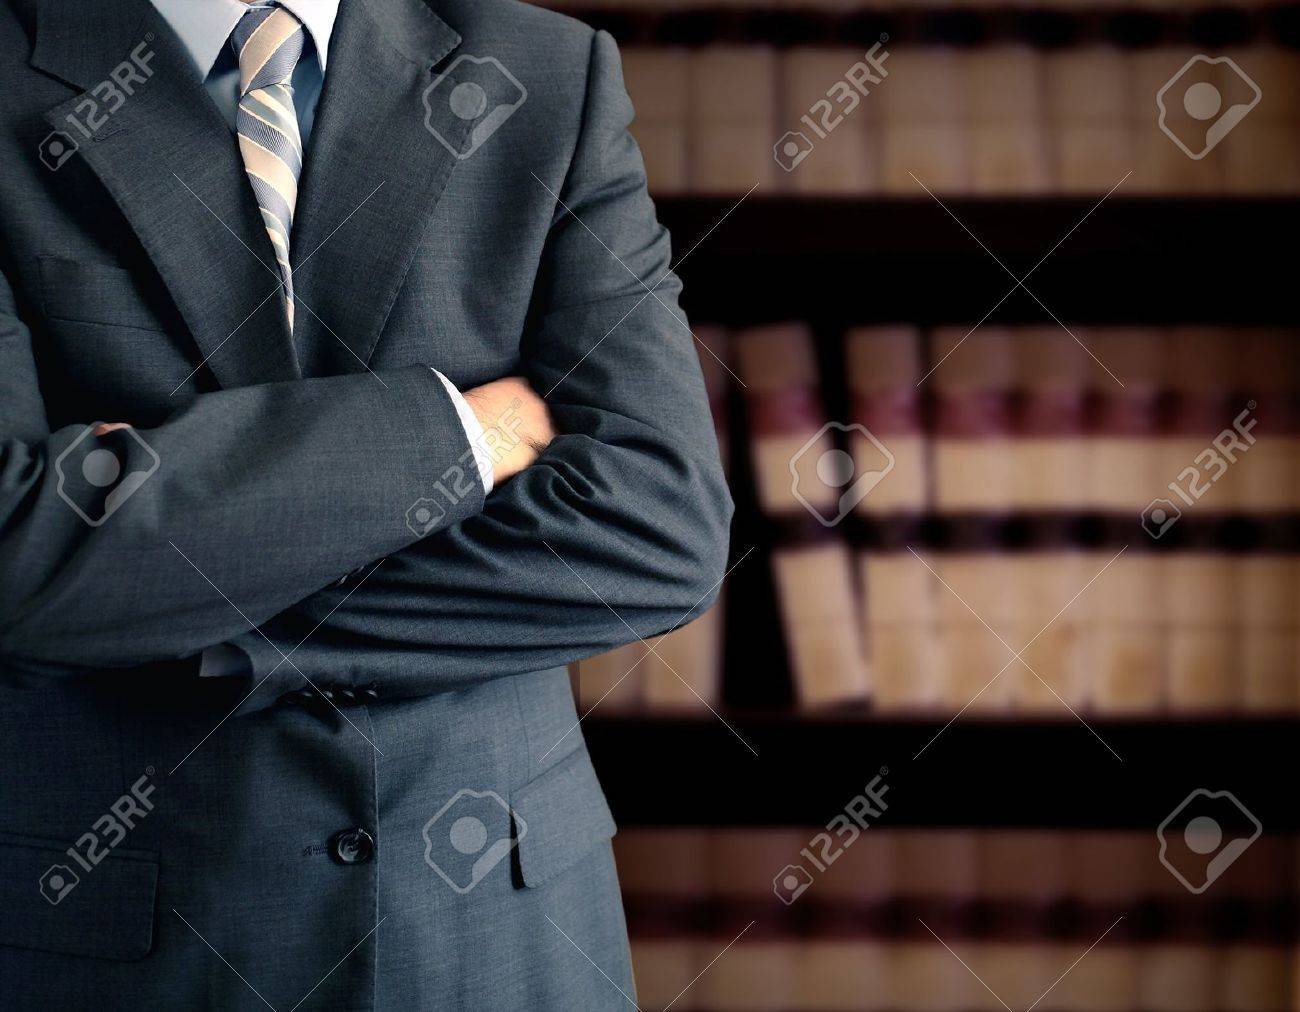 Businessman wearing a suit in front of a bookcase Stock Photo - 11696462